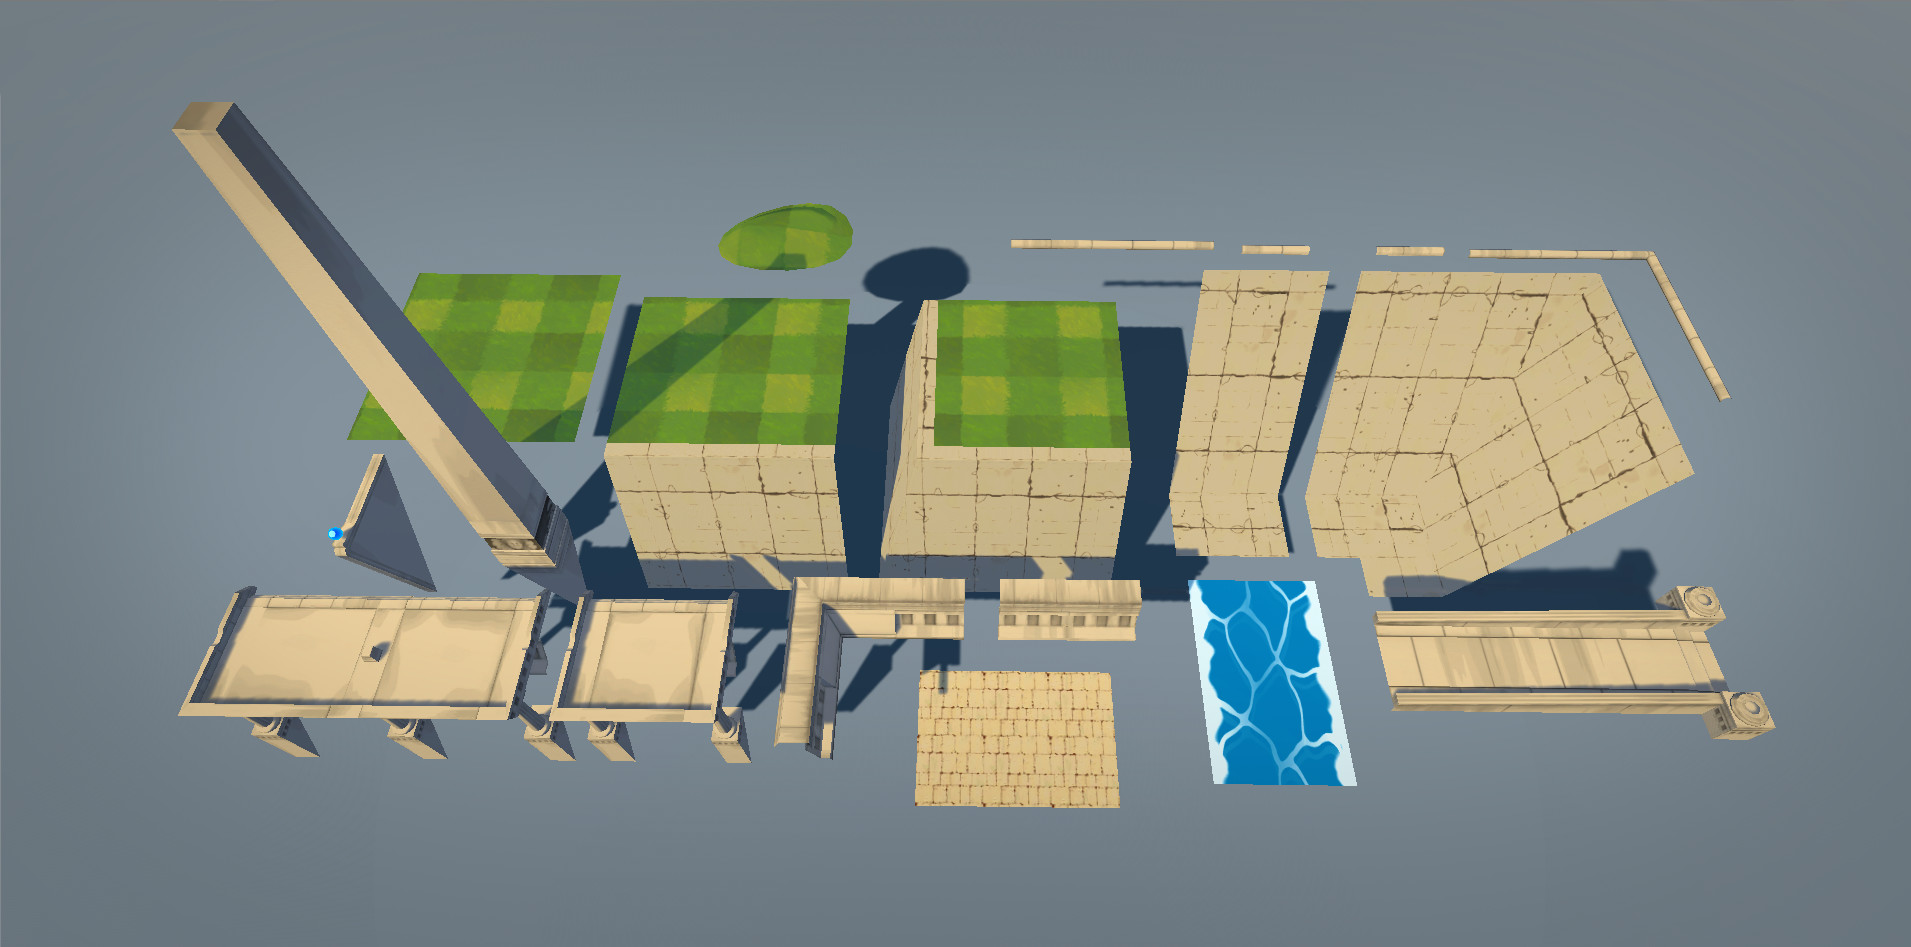 Kit breakdown for larger architectural elements. All of the stonework pieces use either a tiling texture, or a single trim sheet. The tiling texture for the grass is tri-planar projected, so the hill meshes can easily be edited without concern for seams.